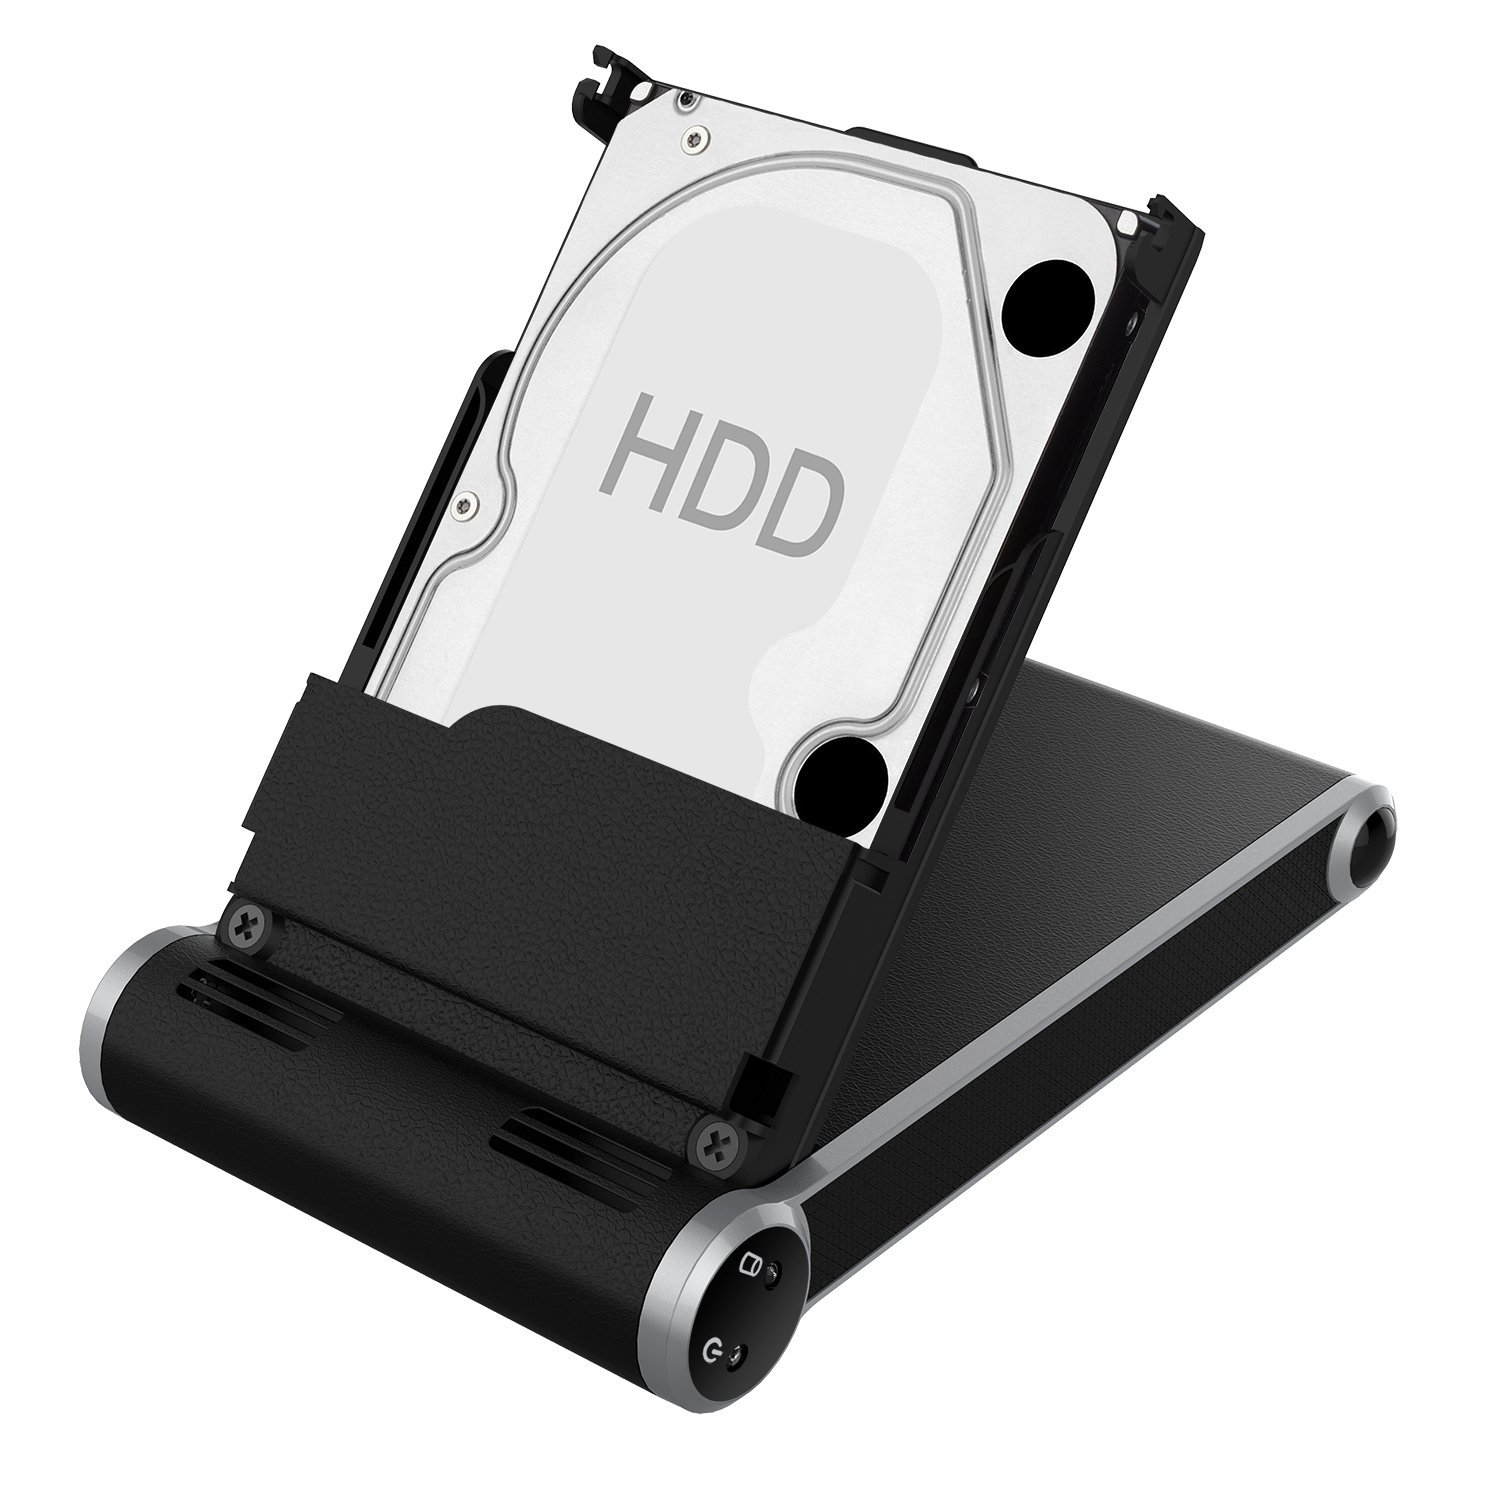 """2017 USB 3.0 Slim Pro 2.5"""" SATA I/II/III SOWTECH LED IndicatorHDD SSD Computer Hard Disk Drive Enclosures Plug and Play Brushed Casing PC Components External Hard Drive Case Tool Free"""